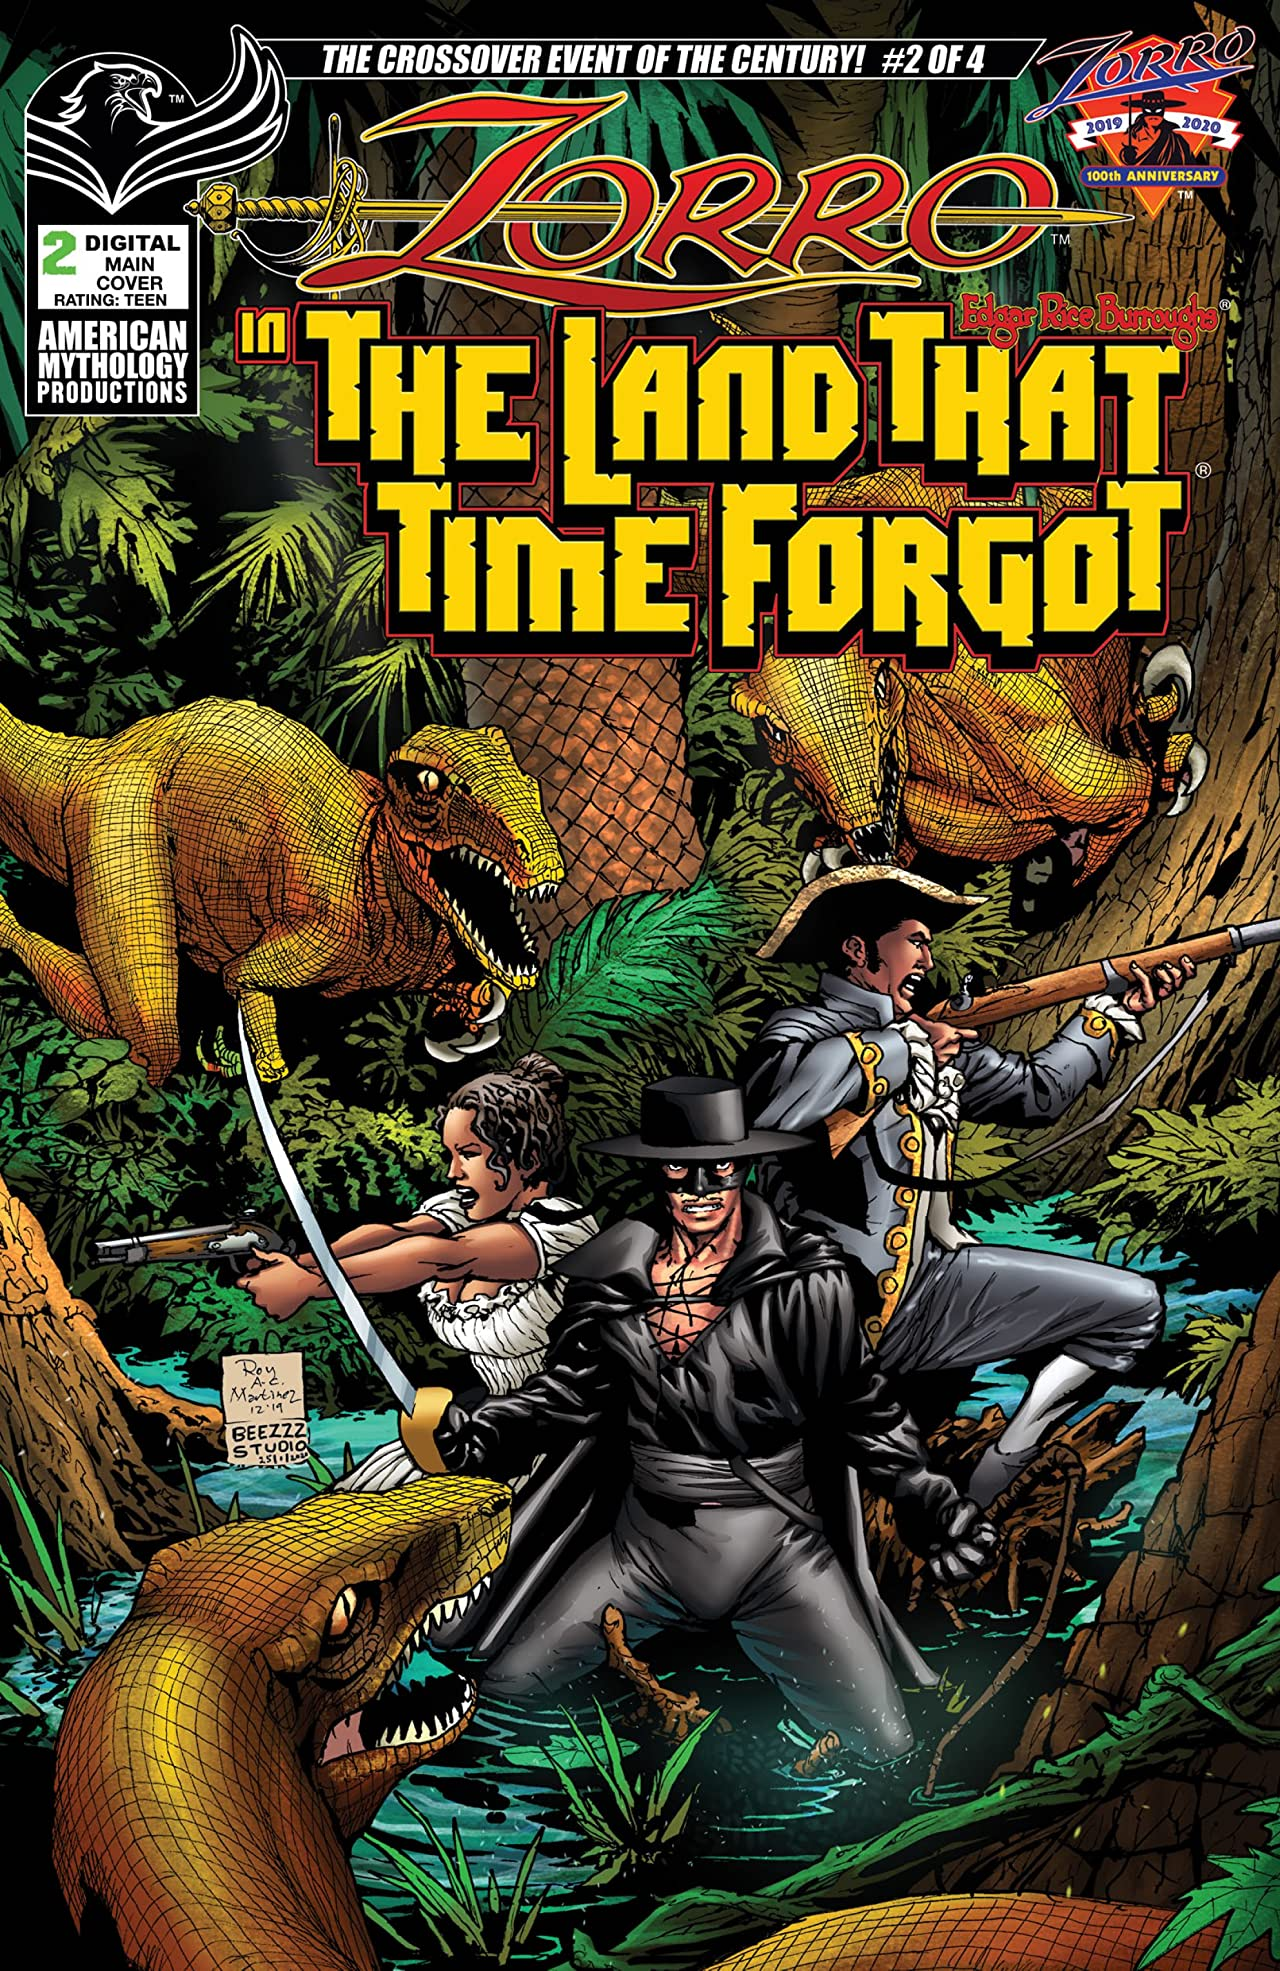 Zorro in the Land That Time Forgot No.2